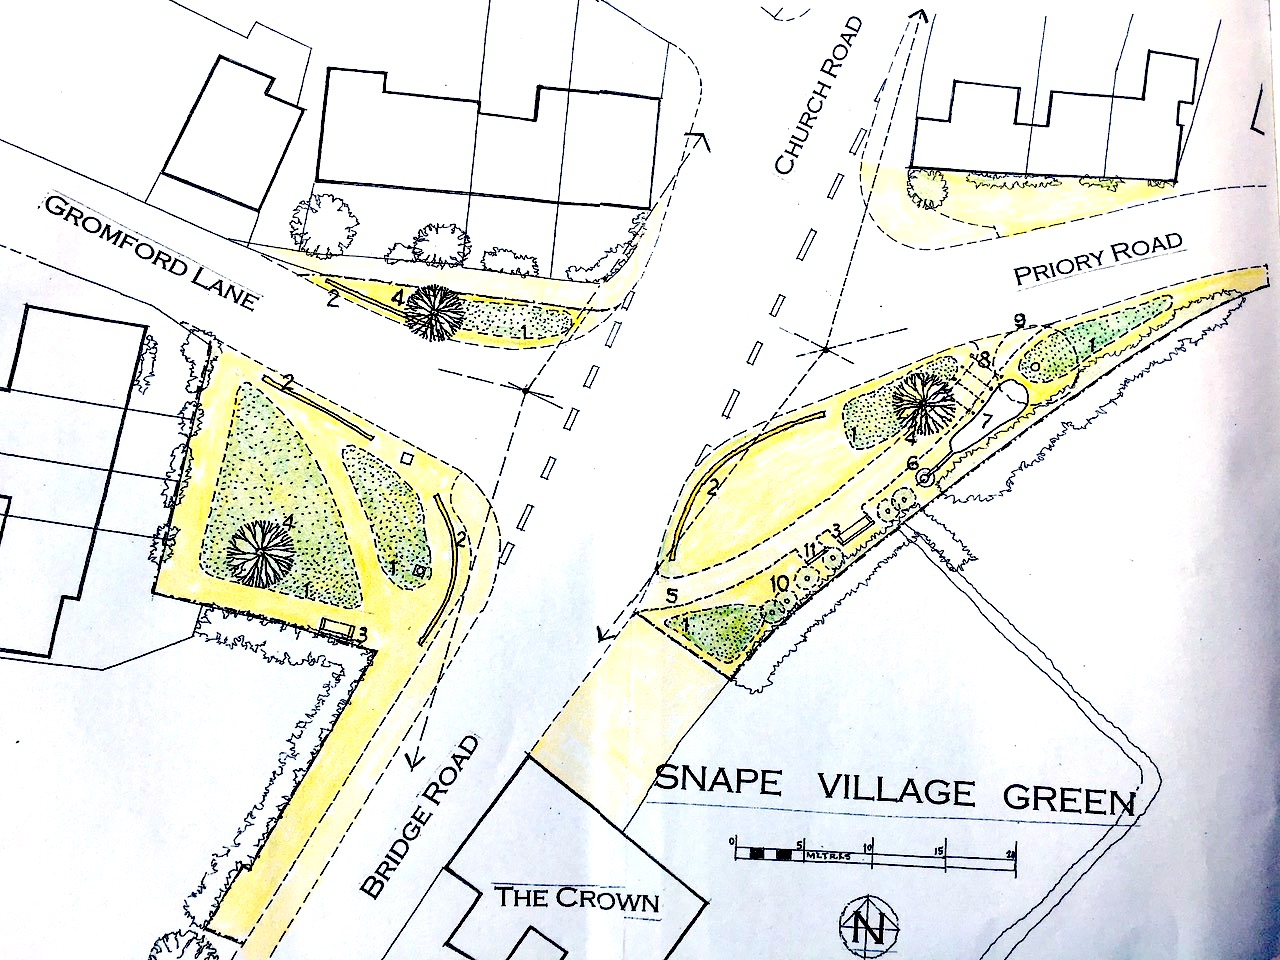 Snape Village Green proposal